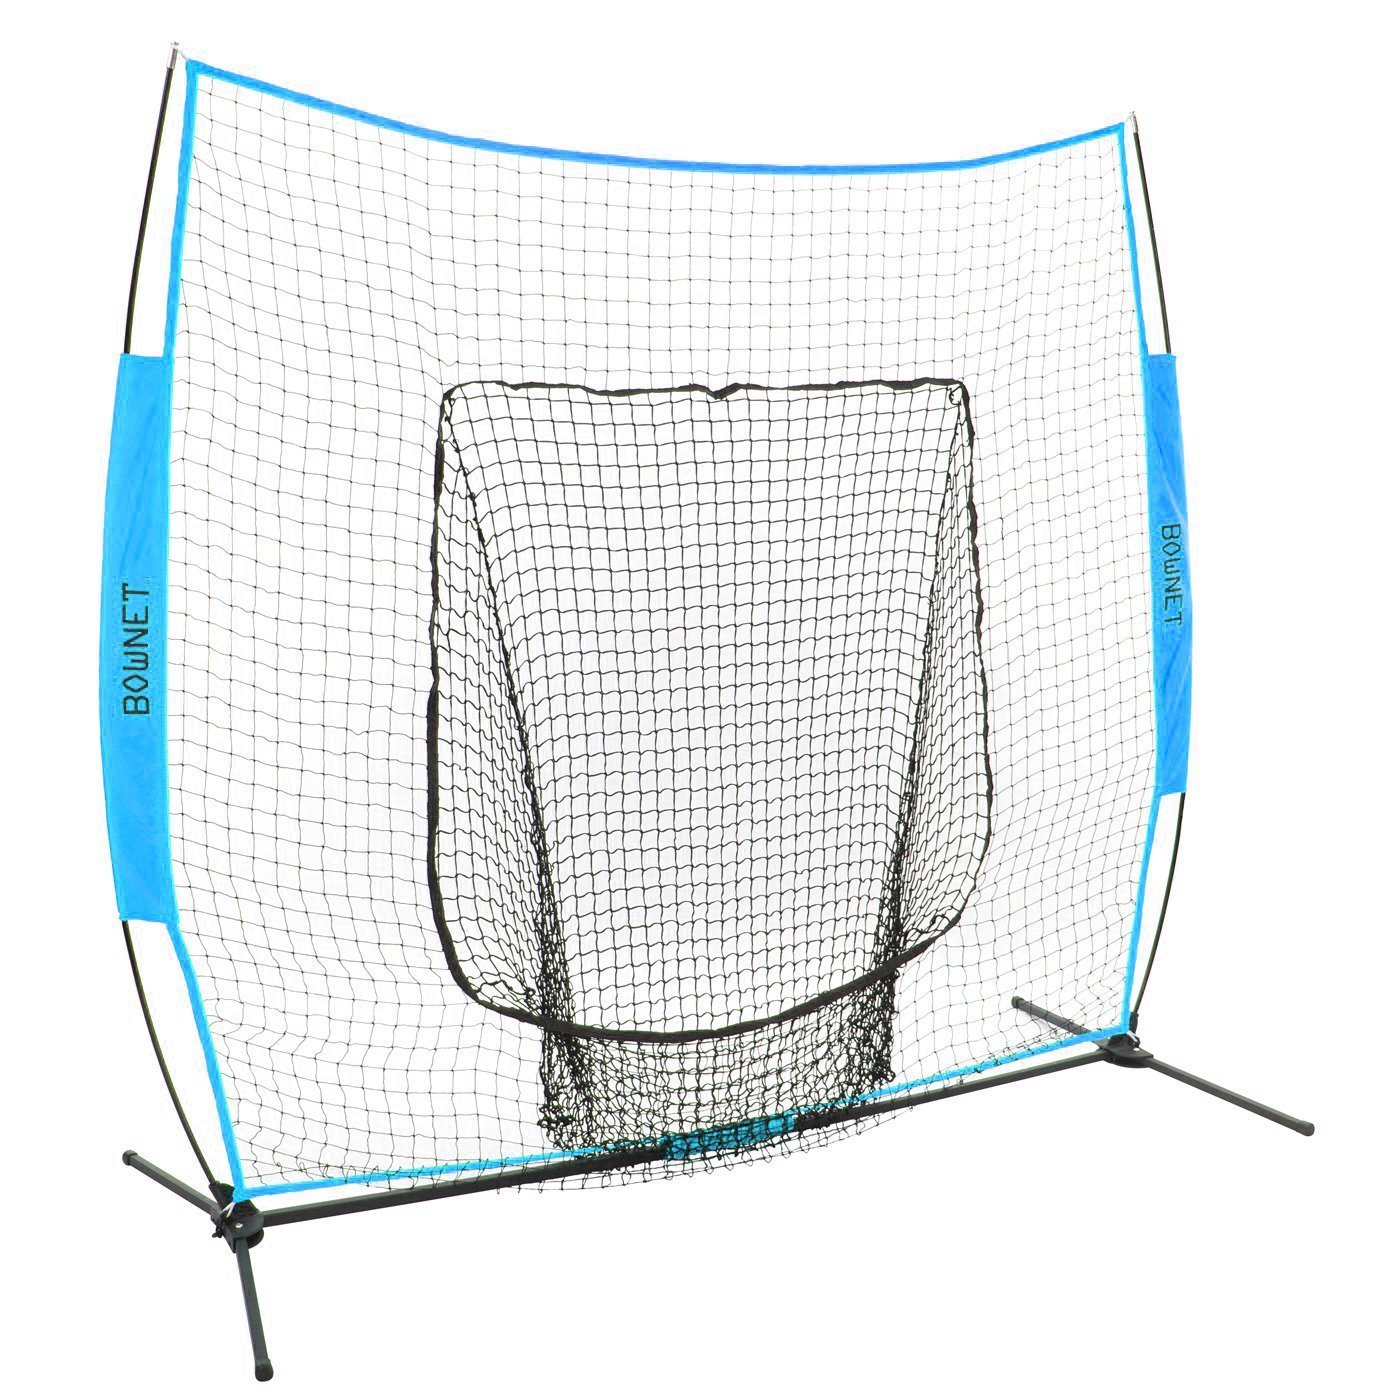 Bownet 7' x 7' Big Mouth X Deluxe Portable Hitting / Pitching Training Net (Columbia)